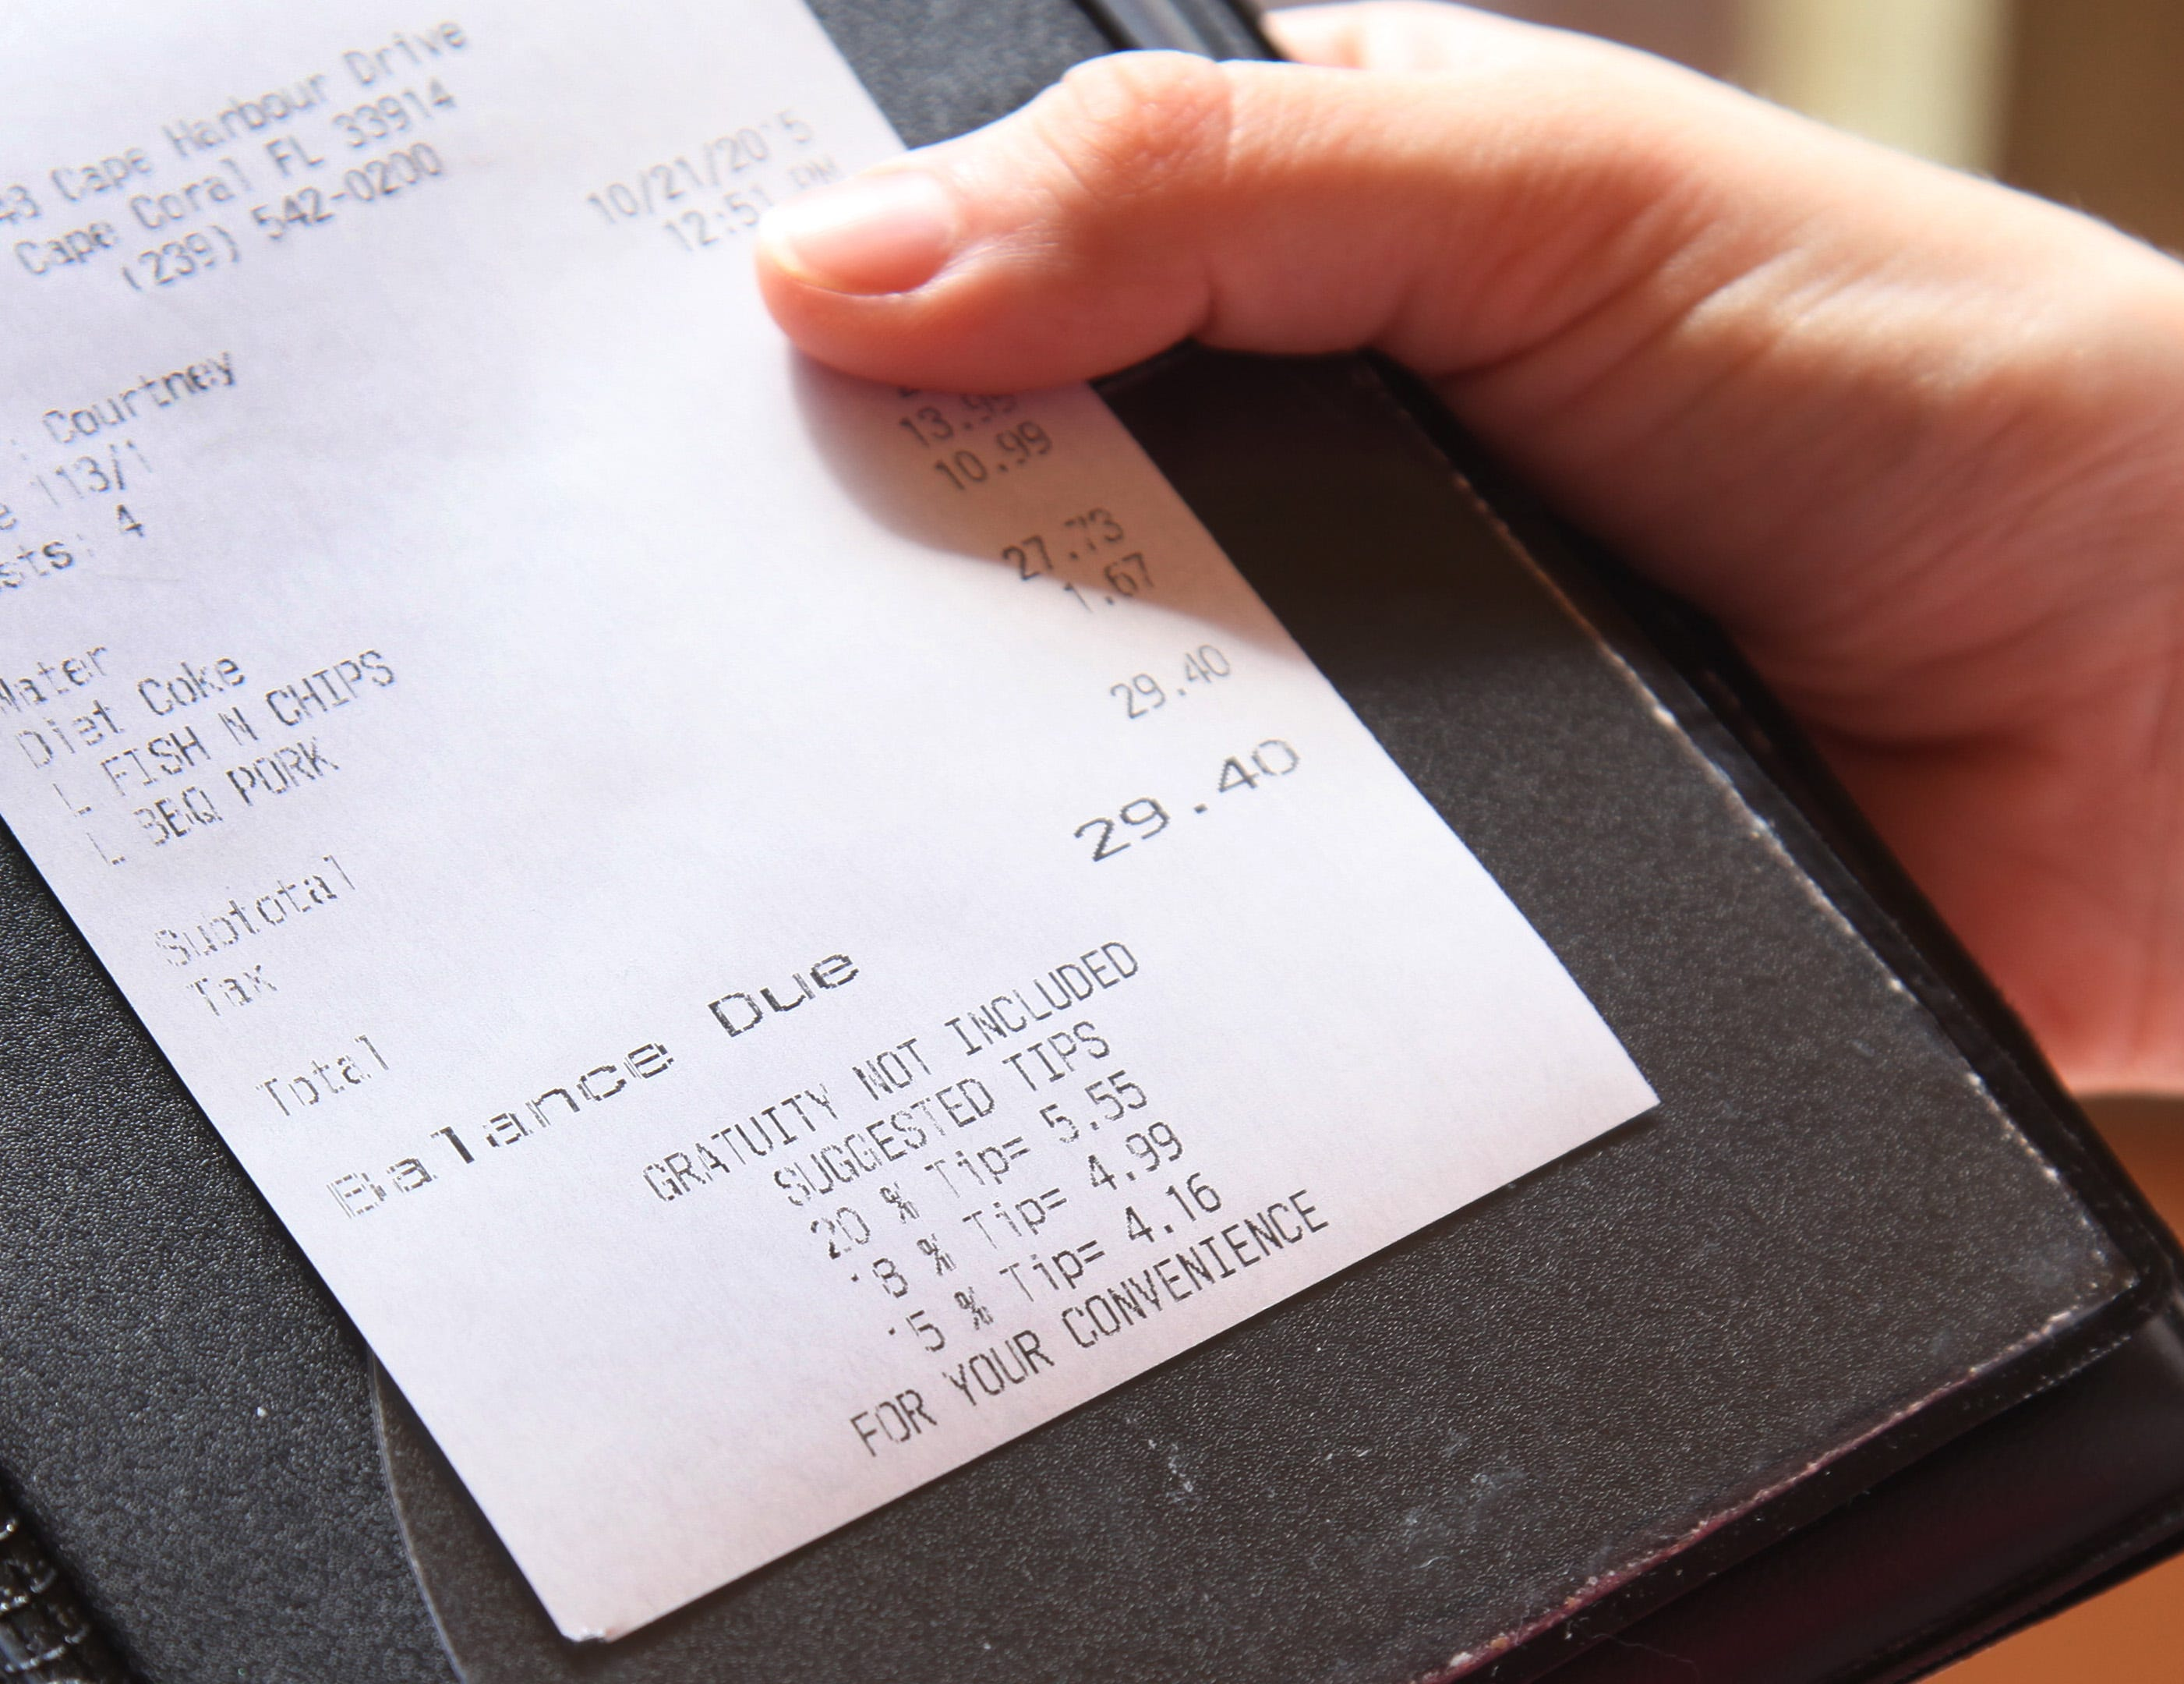 The busboy earns his tip